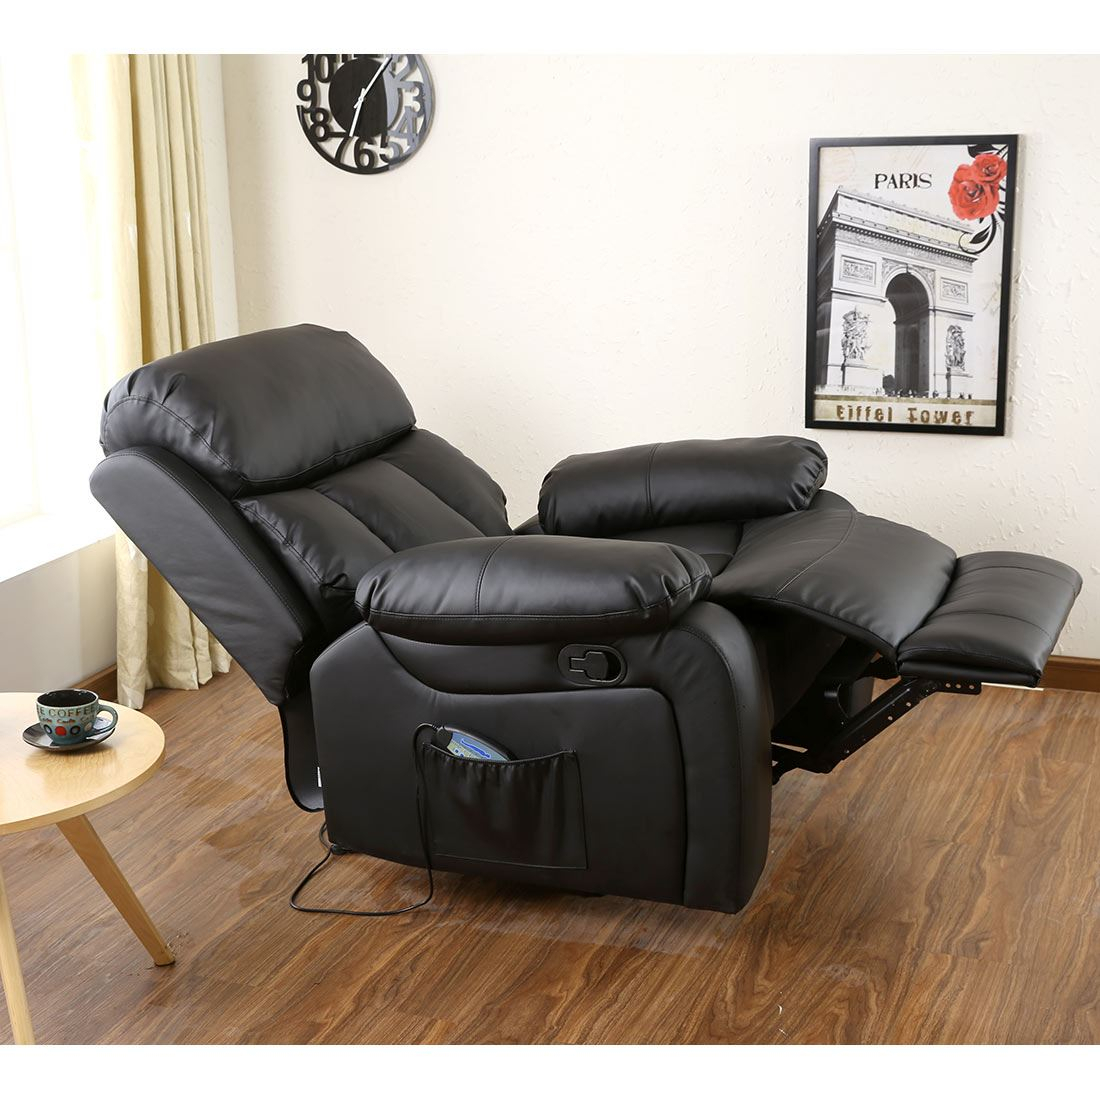 Chester Heated Leather Massage Recliner Chair Sofa Lounge Pertaining To Sofa Lounge Chairs (View 6 of 15)